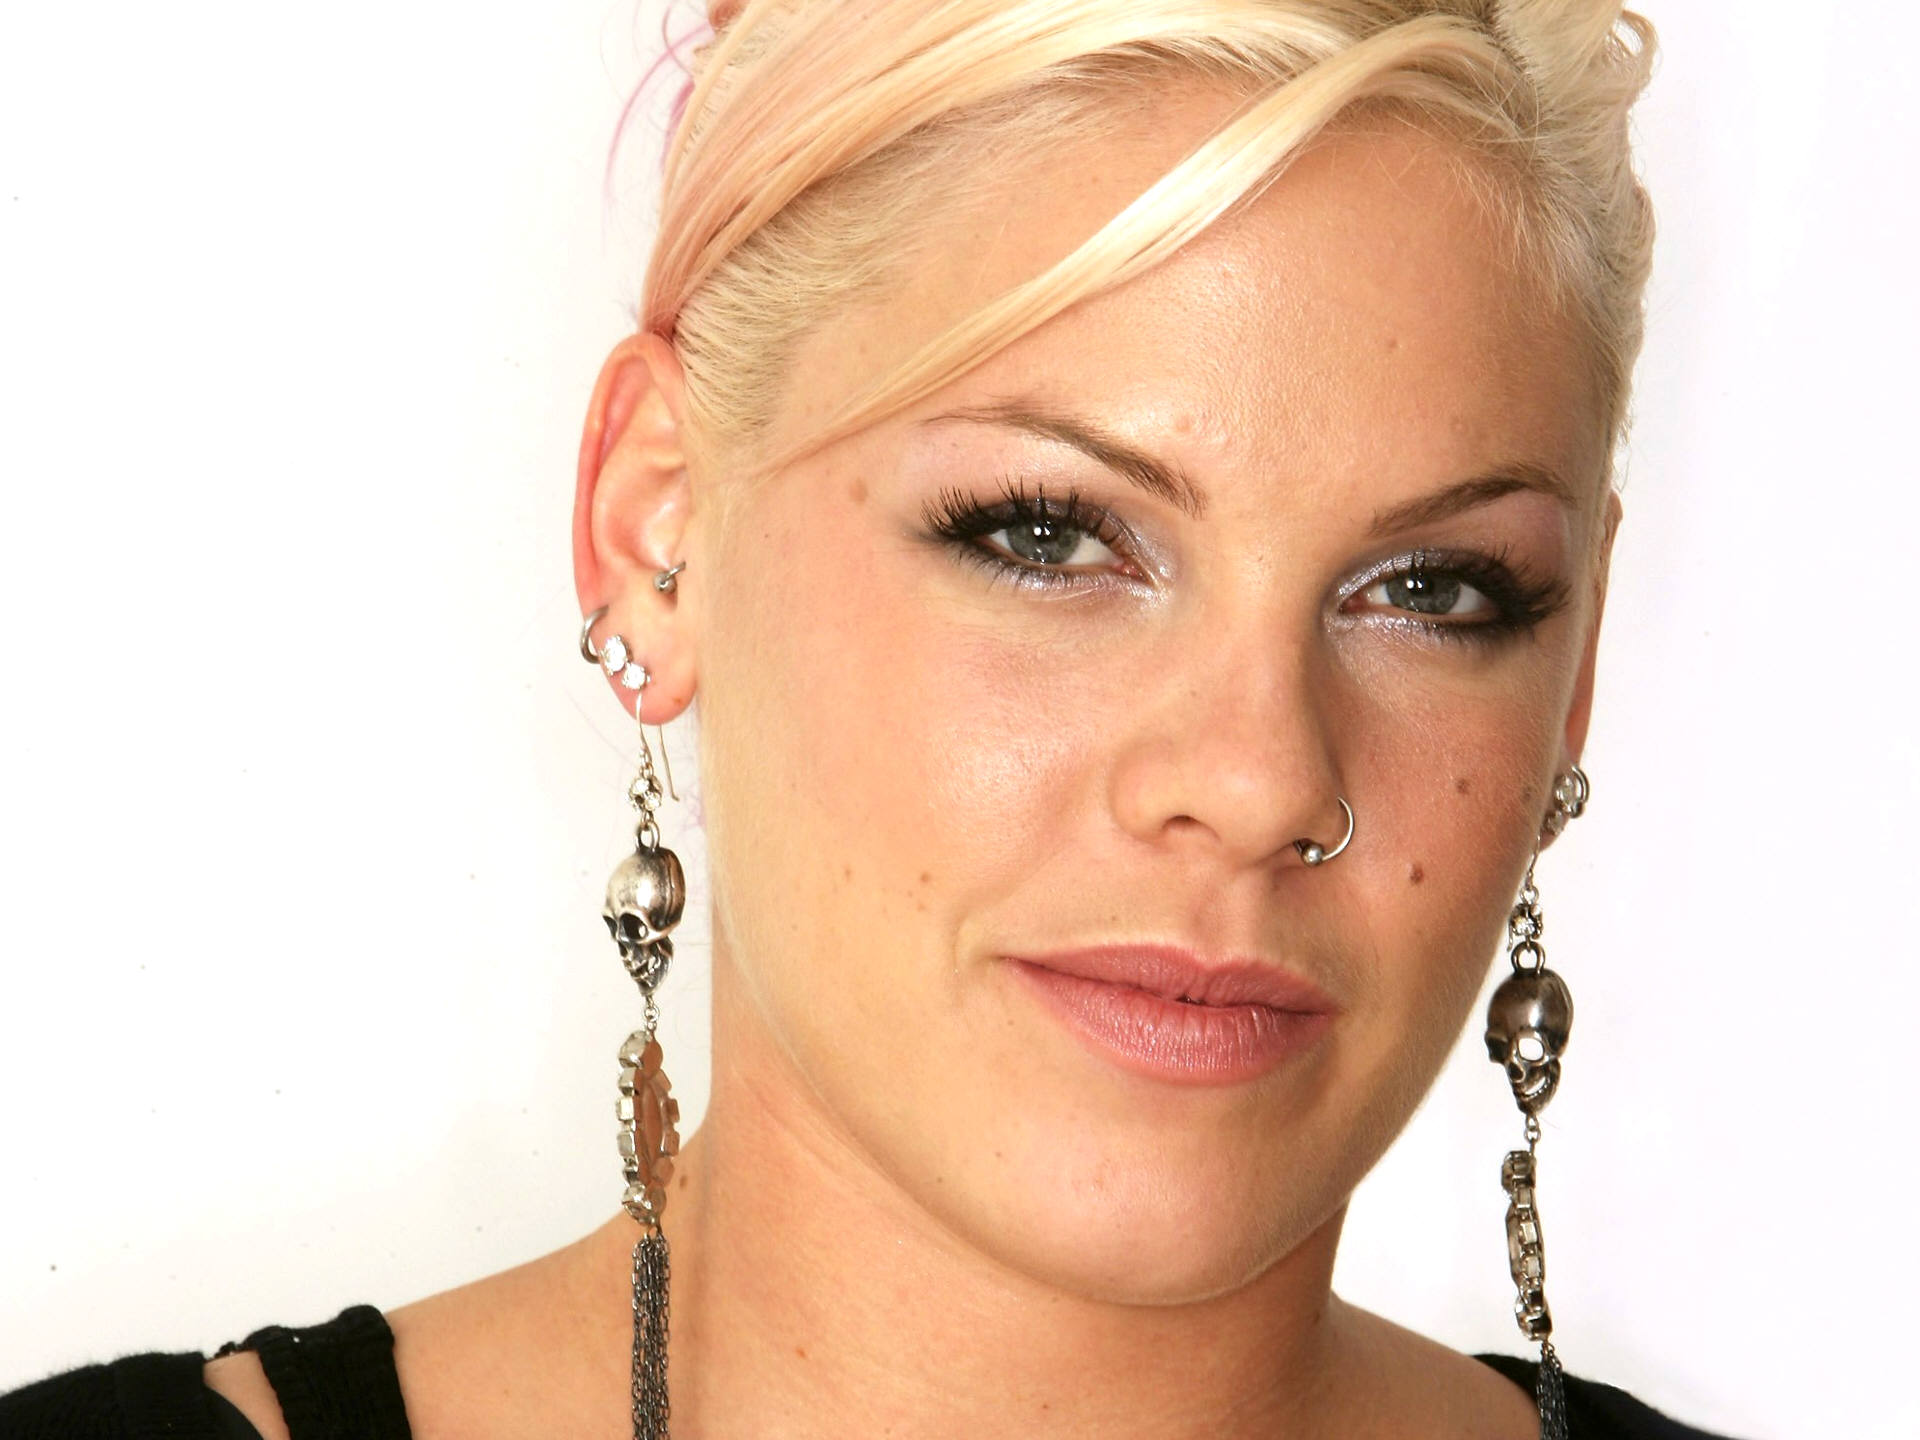 Fire And Water Hd Wallpapers Alecia Beth Moore Wallpaper 1920x1440 76407